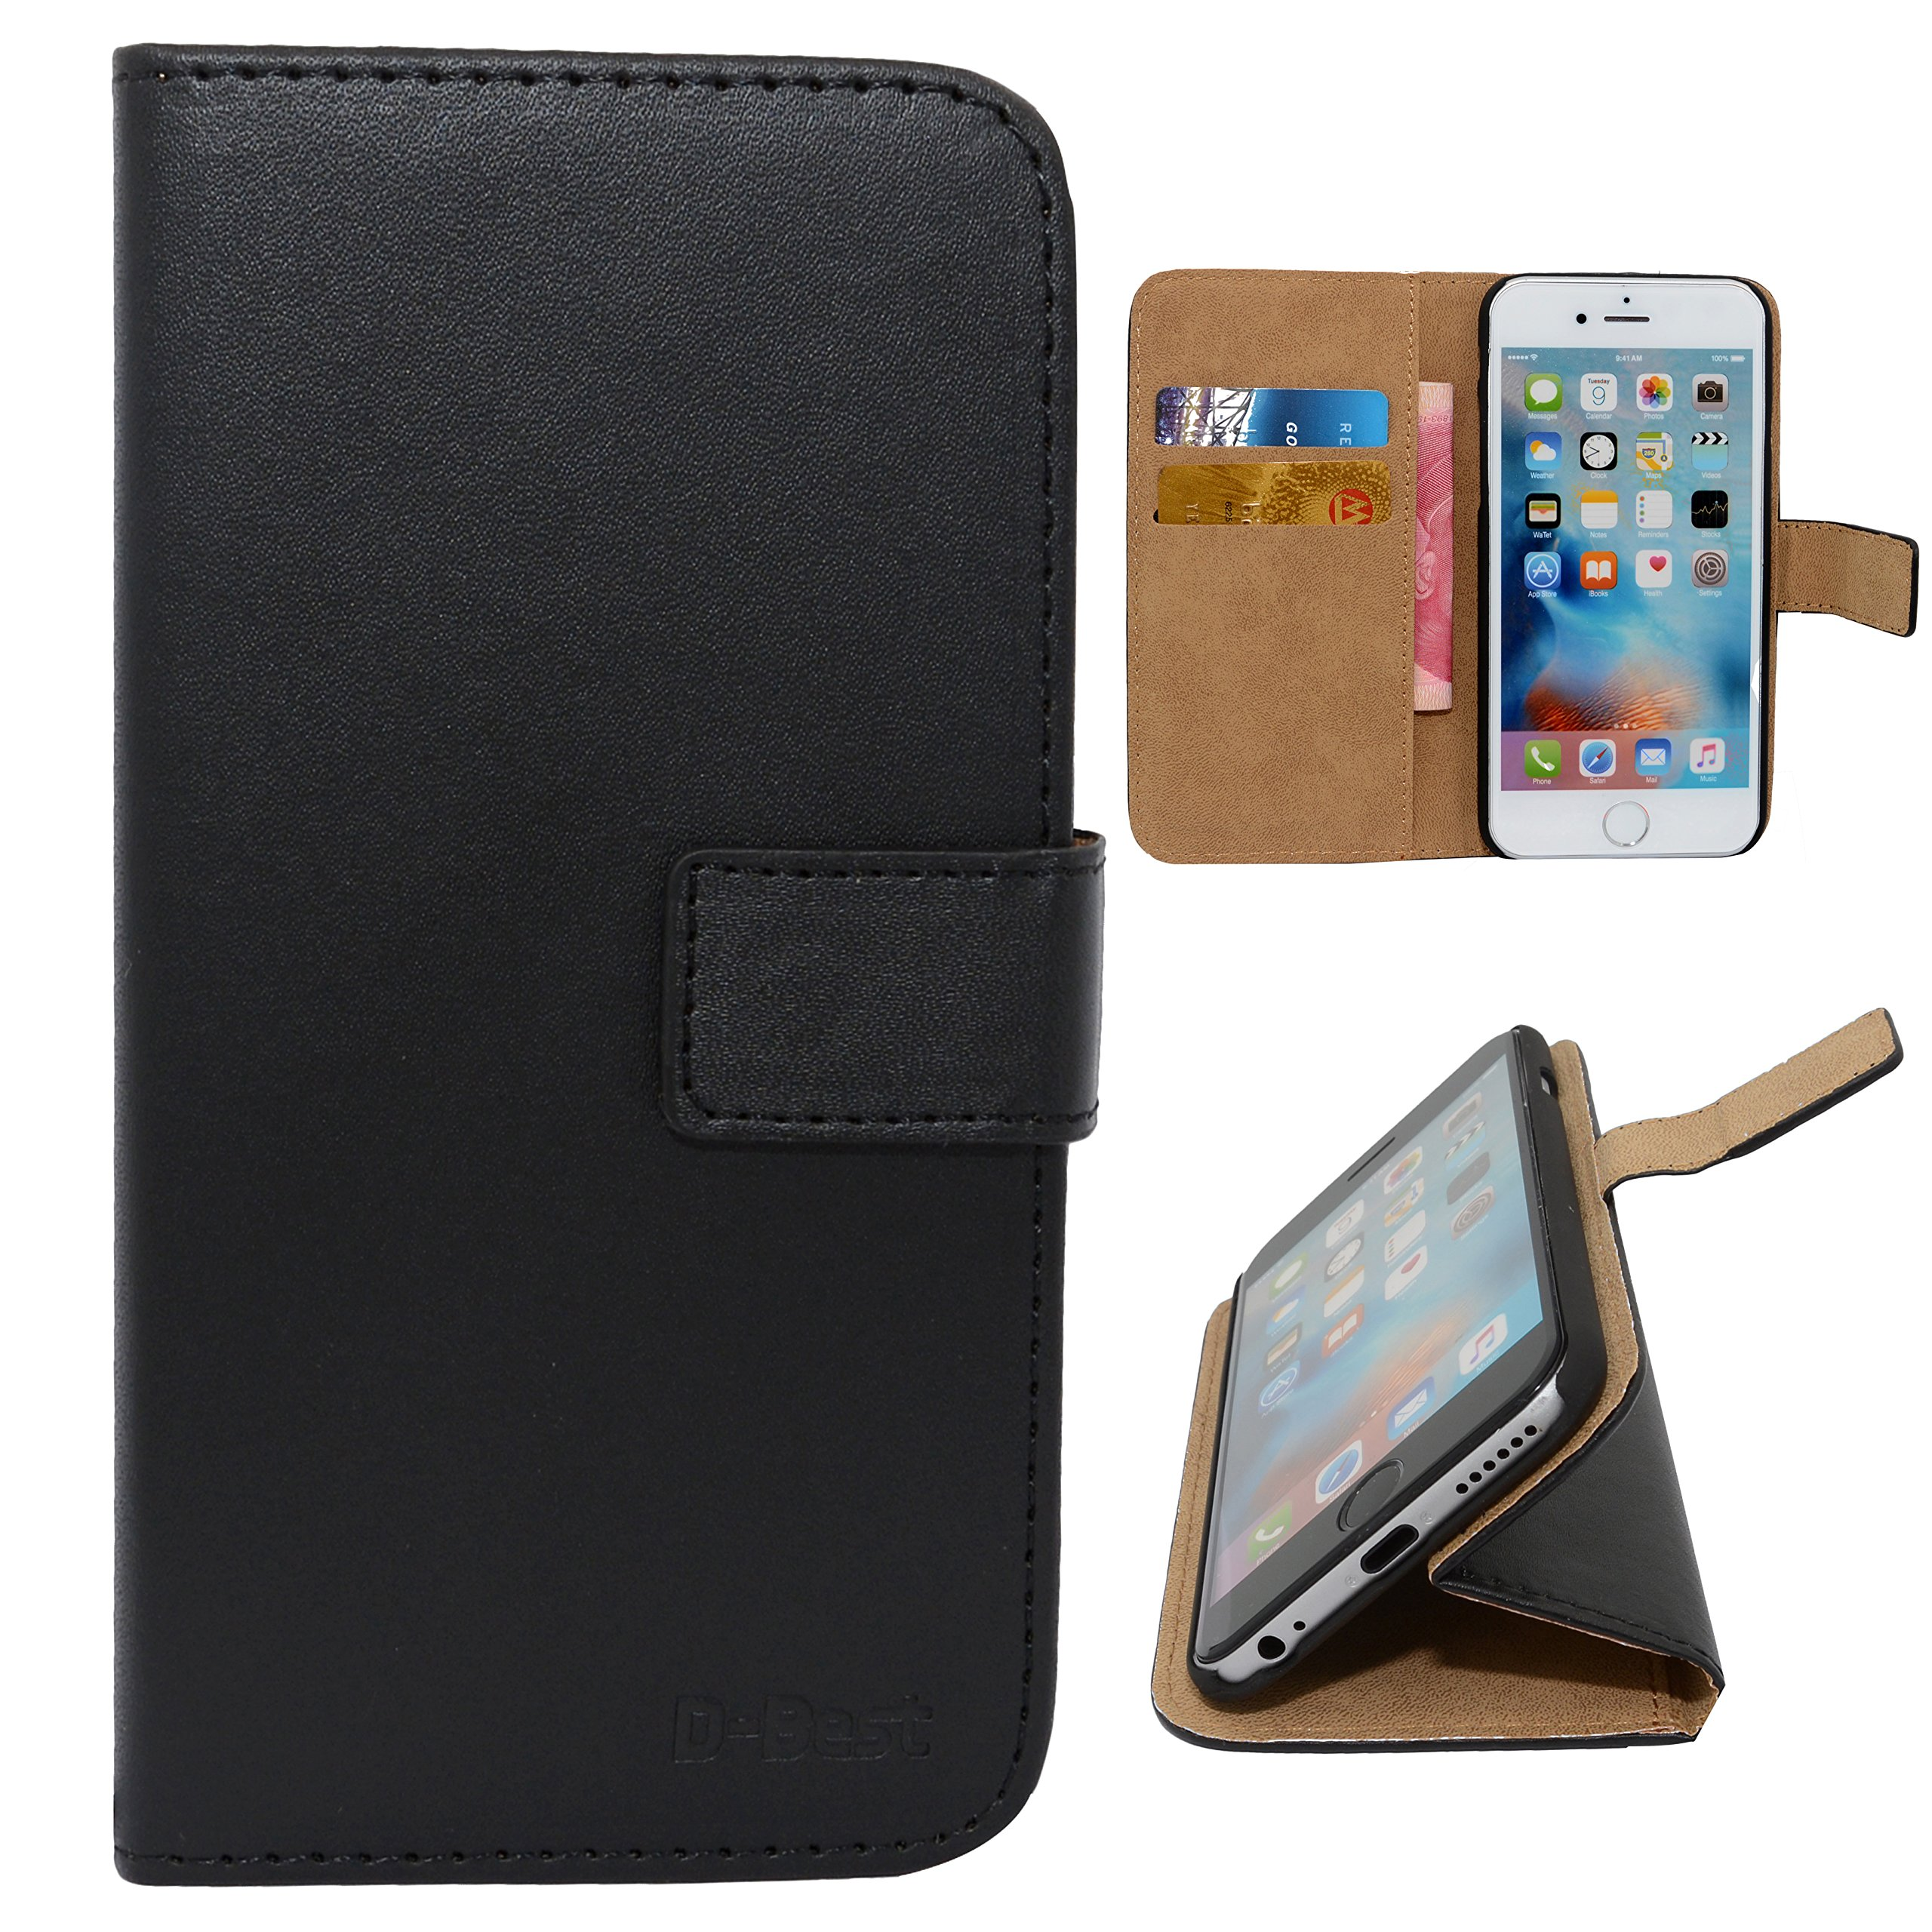 D-Best iPhone Se Case, Premium PU Leather Flip Wallet Case with Credit Card Slot Holder and Hand Grip for Apple iPhone Se and iPhone 5S/5 (Black)